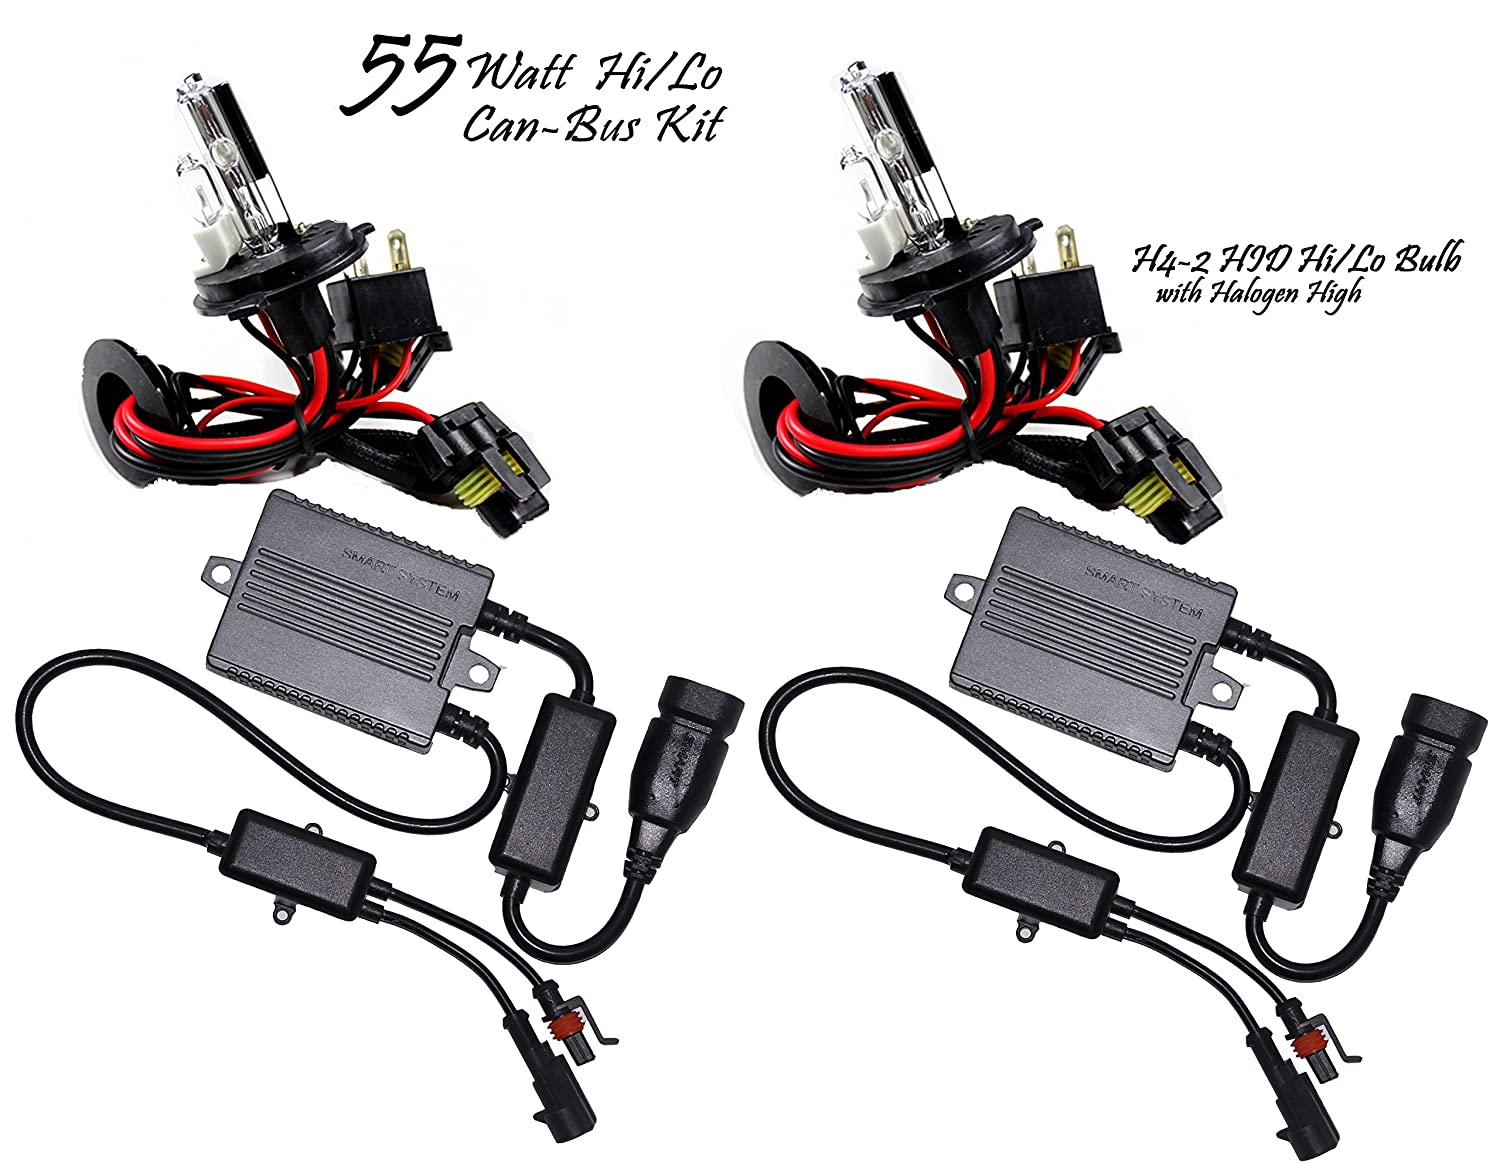 55 Watt Plug N Play W Halogen High Can Bus Hid Kit What Is A Canbus Wiring System 9008 H13 Low 6000k Crystal White Car Electronics